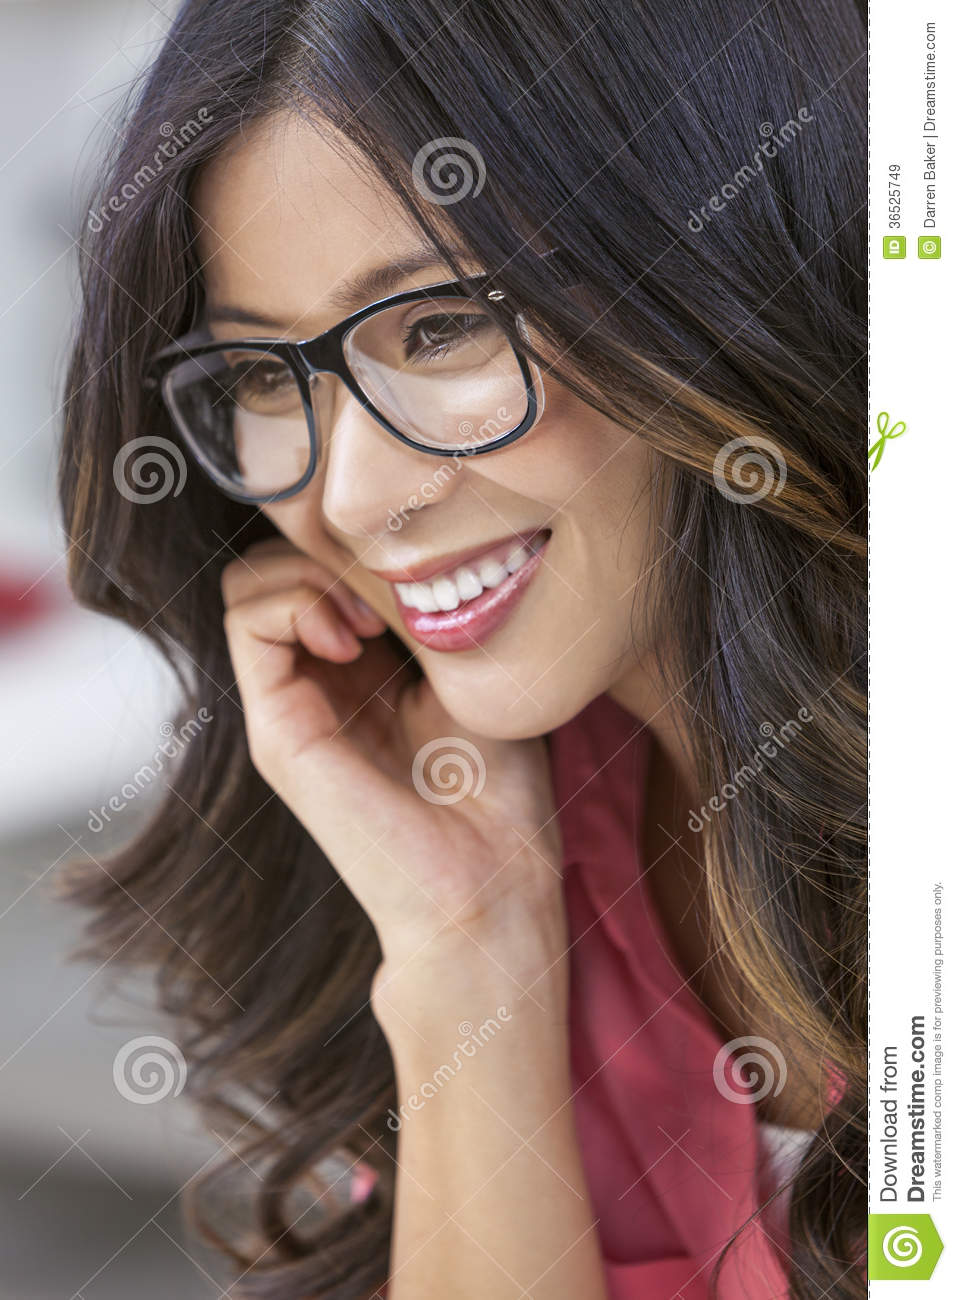 With you girls with geeky glasses agree, the